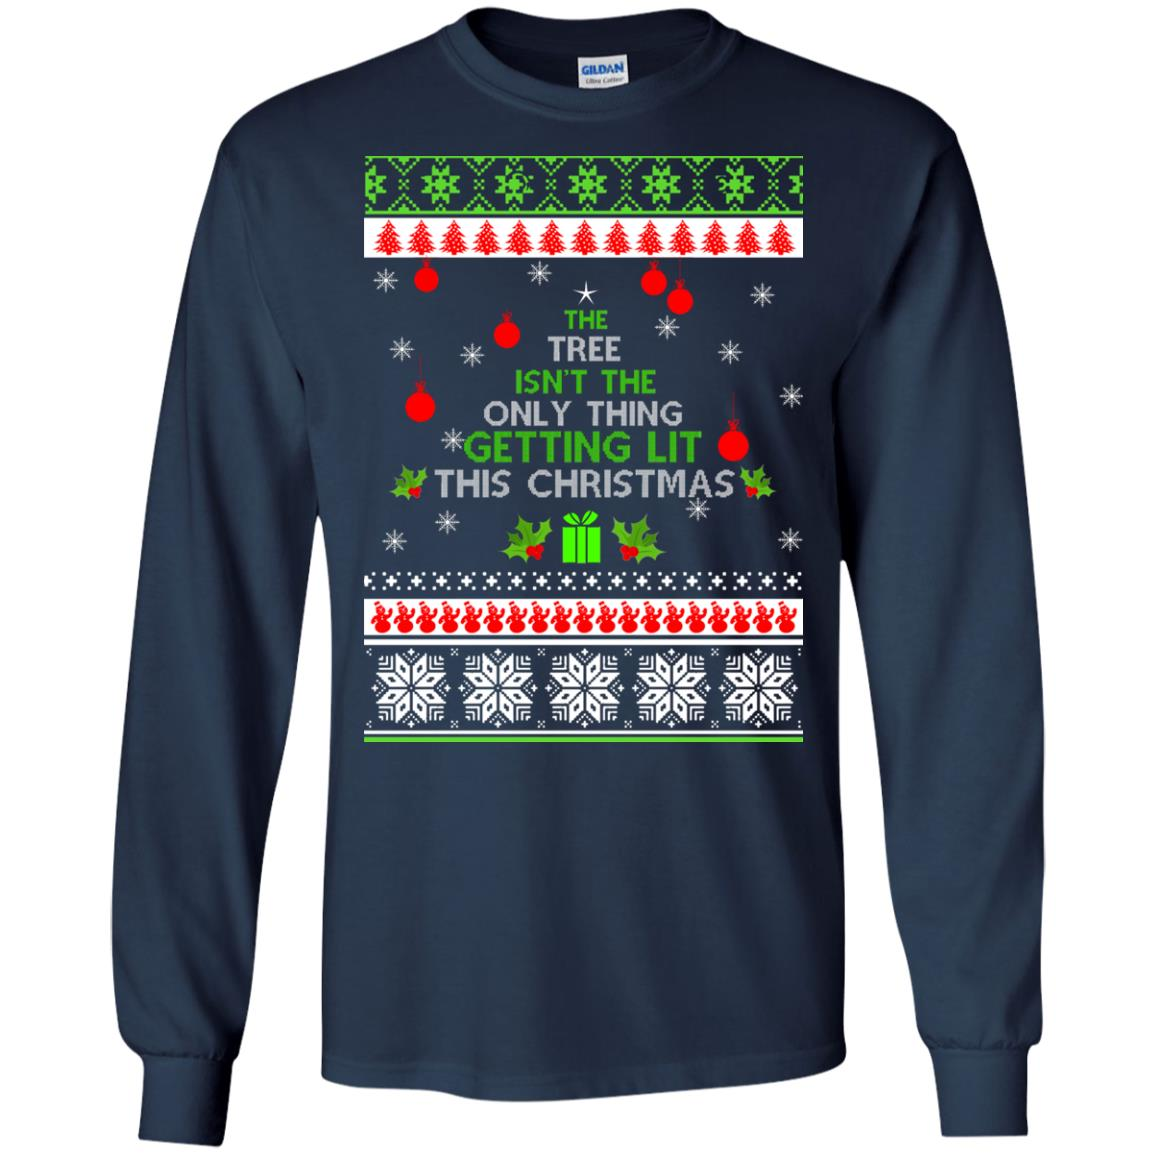 image 5566 - The Tree Isn't The Only Thing Getting Lit This Christmas Sweater, Long Sleeve